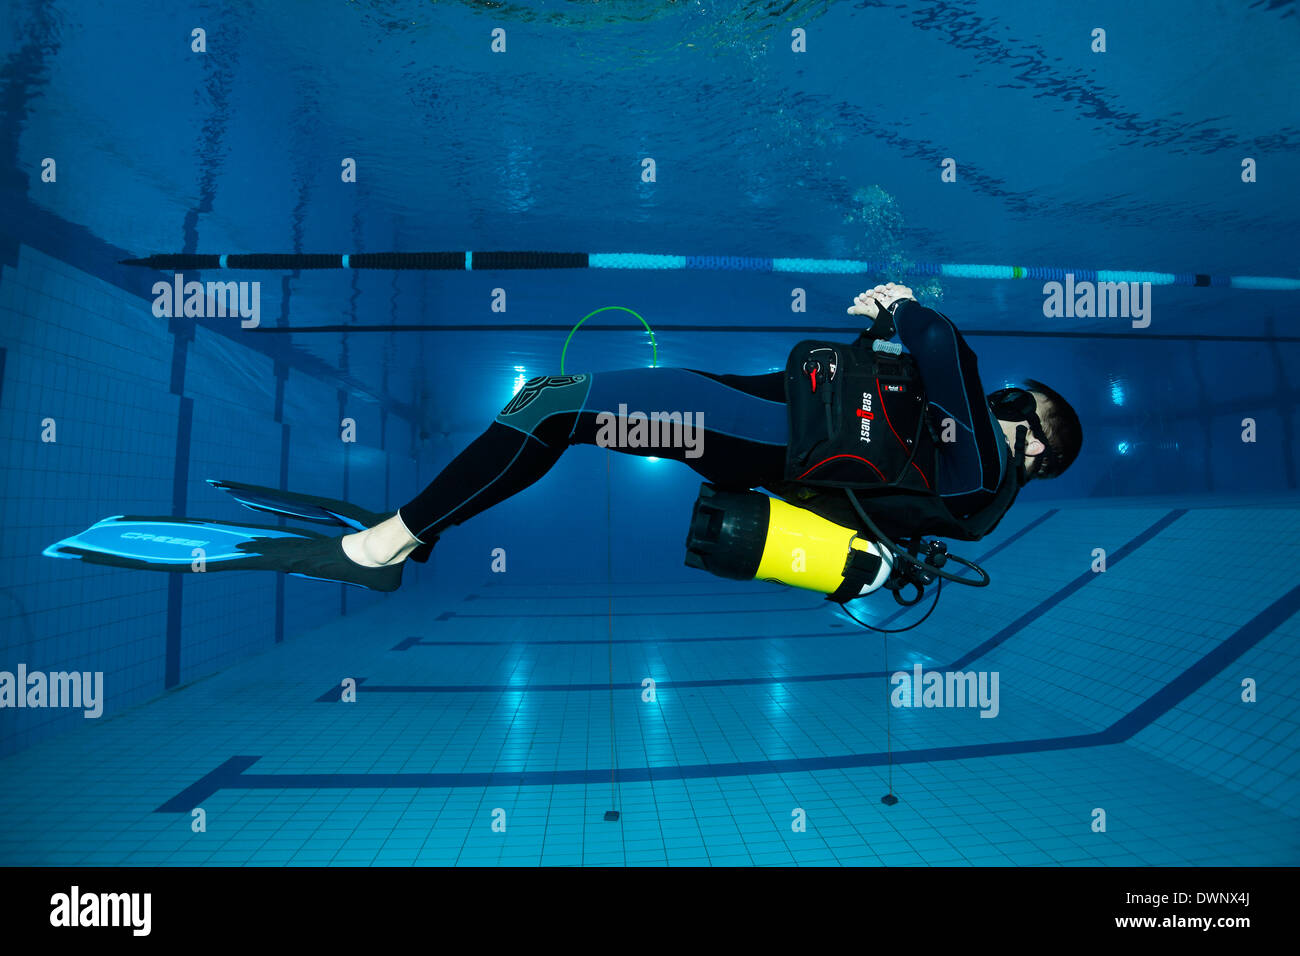 Dive training, scuba diver facing the surface, balancing, in a swimming pool, Nuremberg, Bavaria, Germany - Stock Image